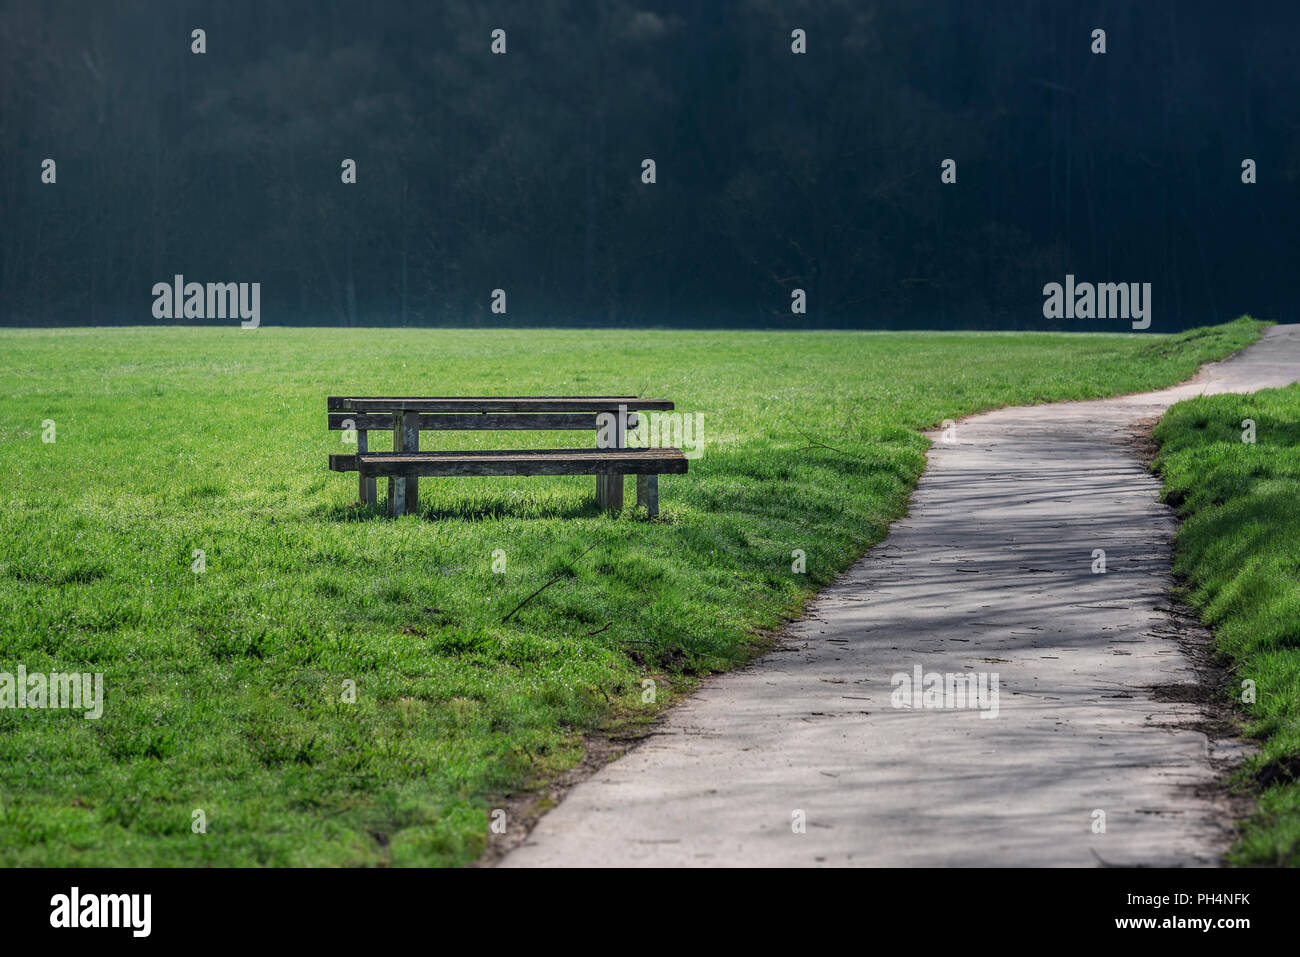 An alley for walking or running, crossing a green meadow and a wooden bench and a table on the side, on a  sunny day. Stock Photo